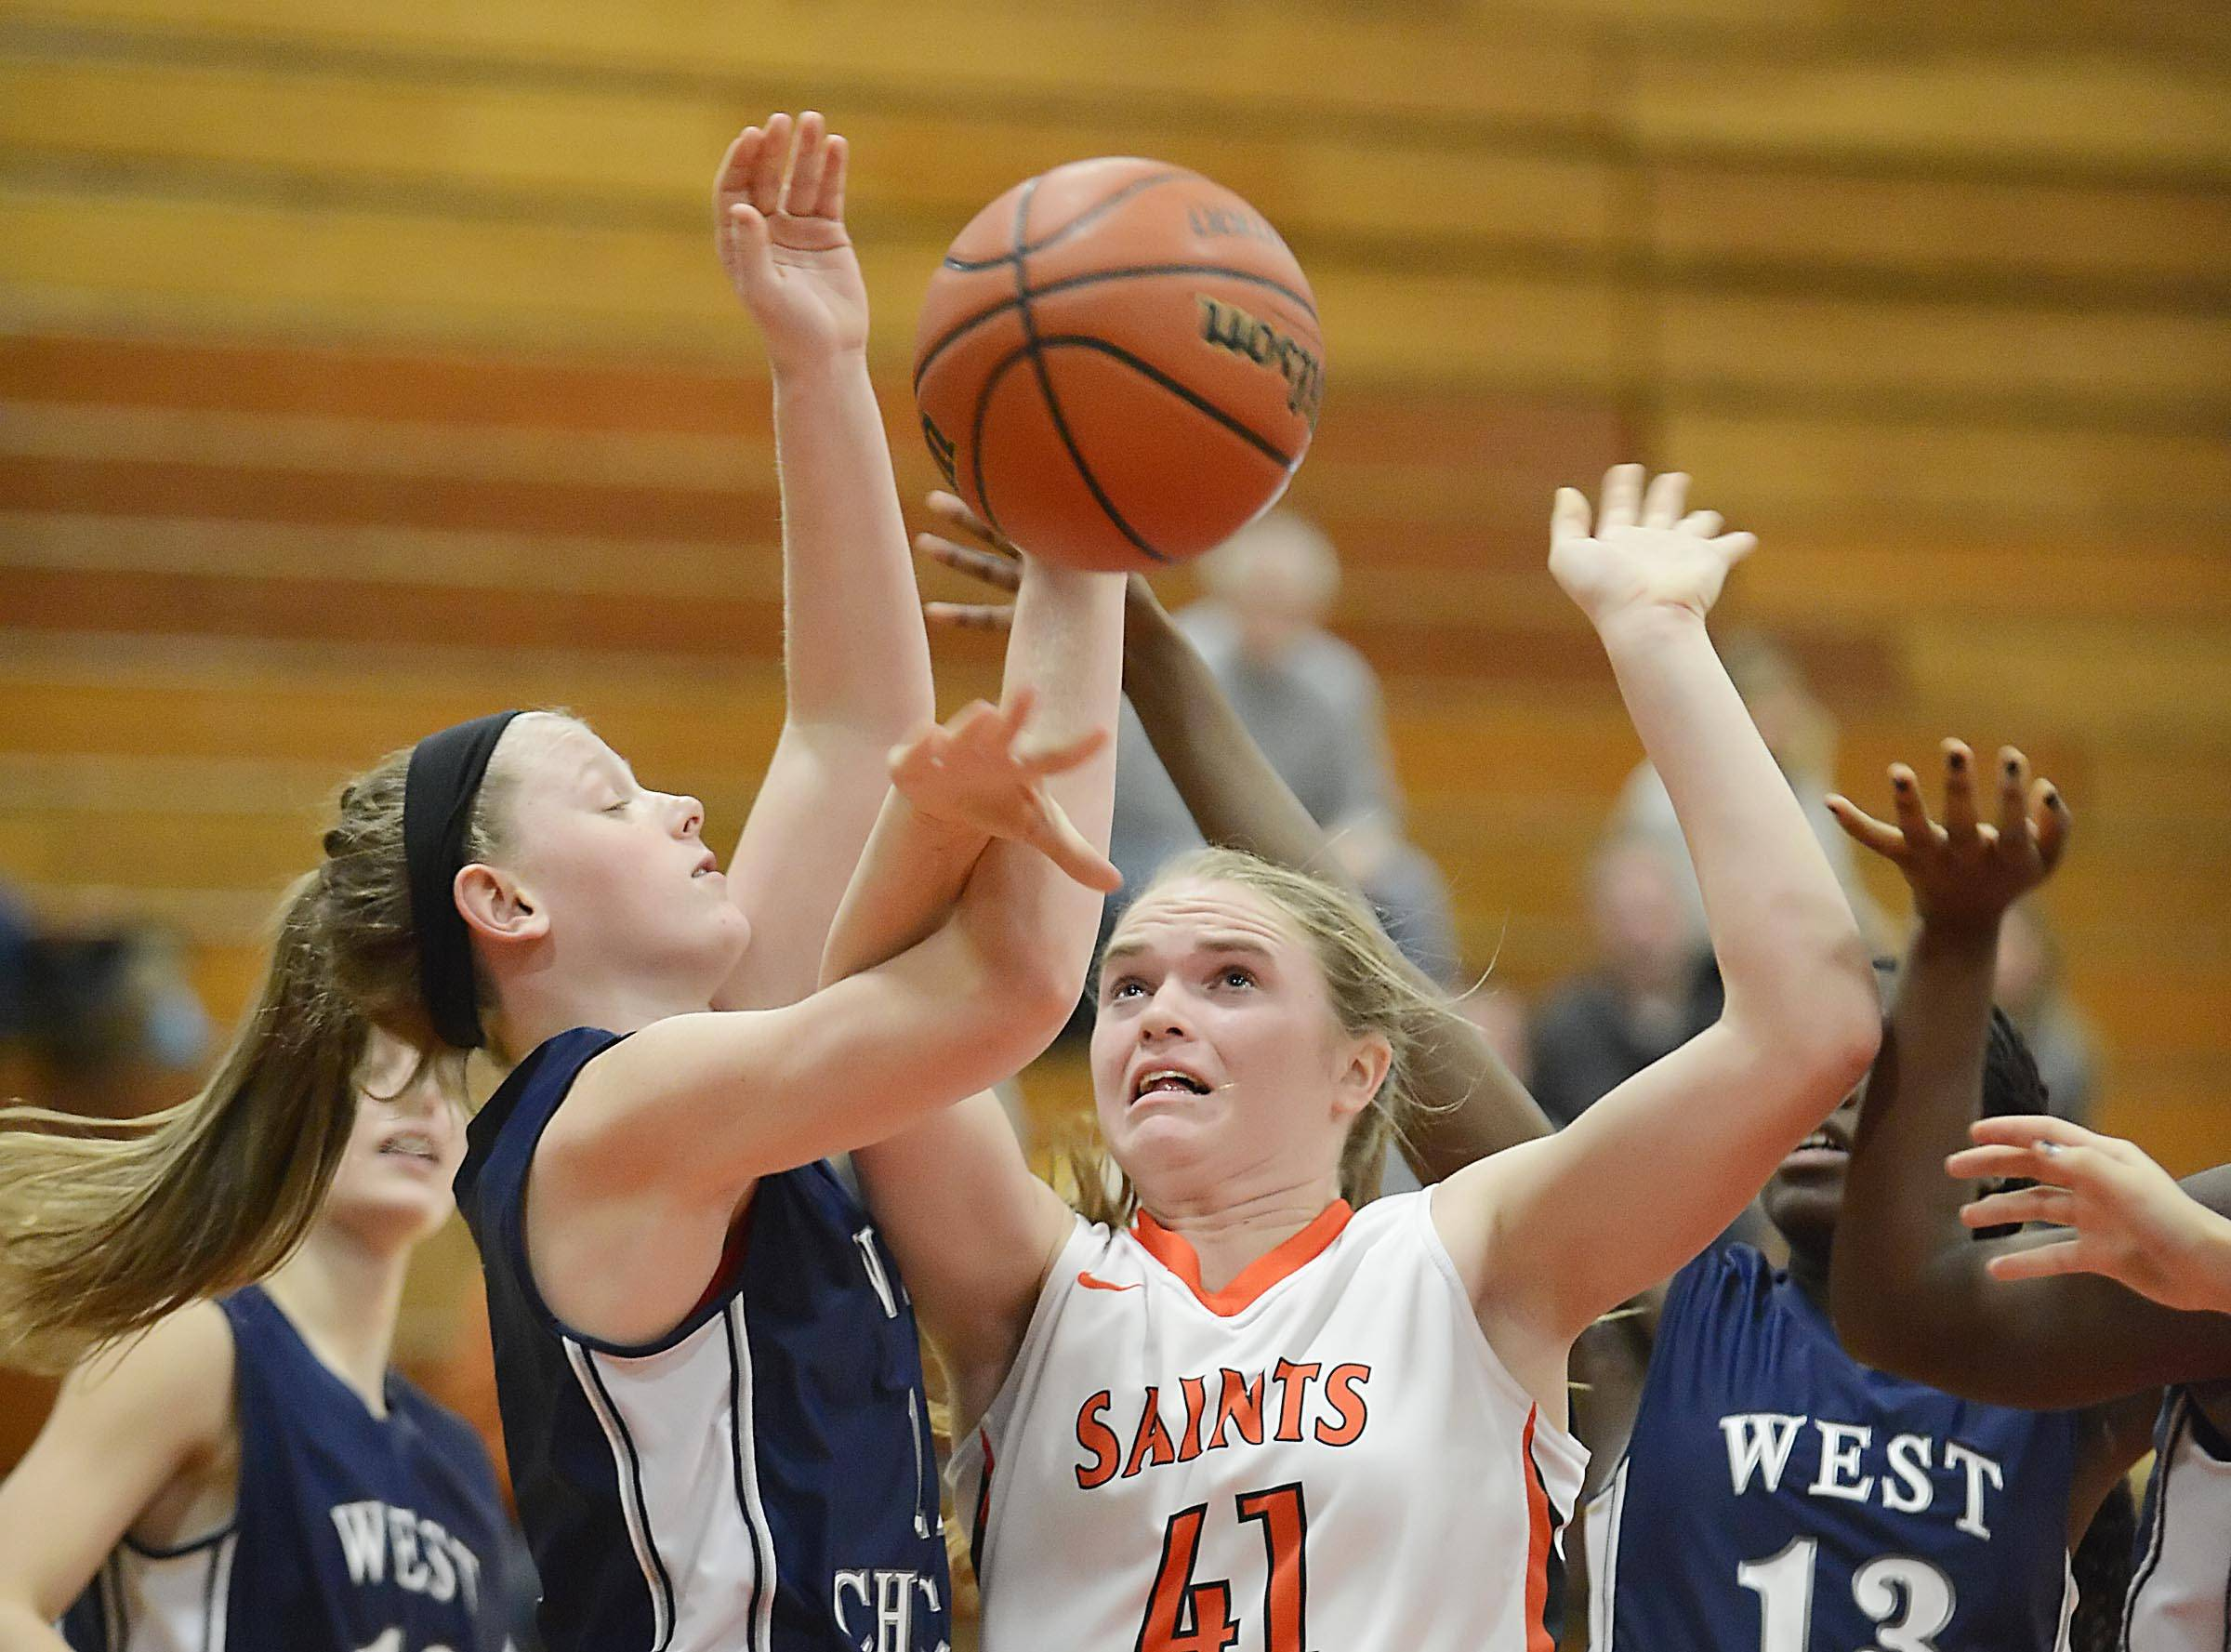 St. Charles East's Sara Rosenfeldt and West Chicago's Mariel Culloton fight for a rebound.